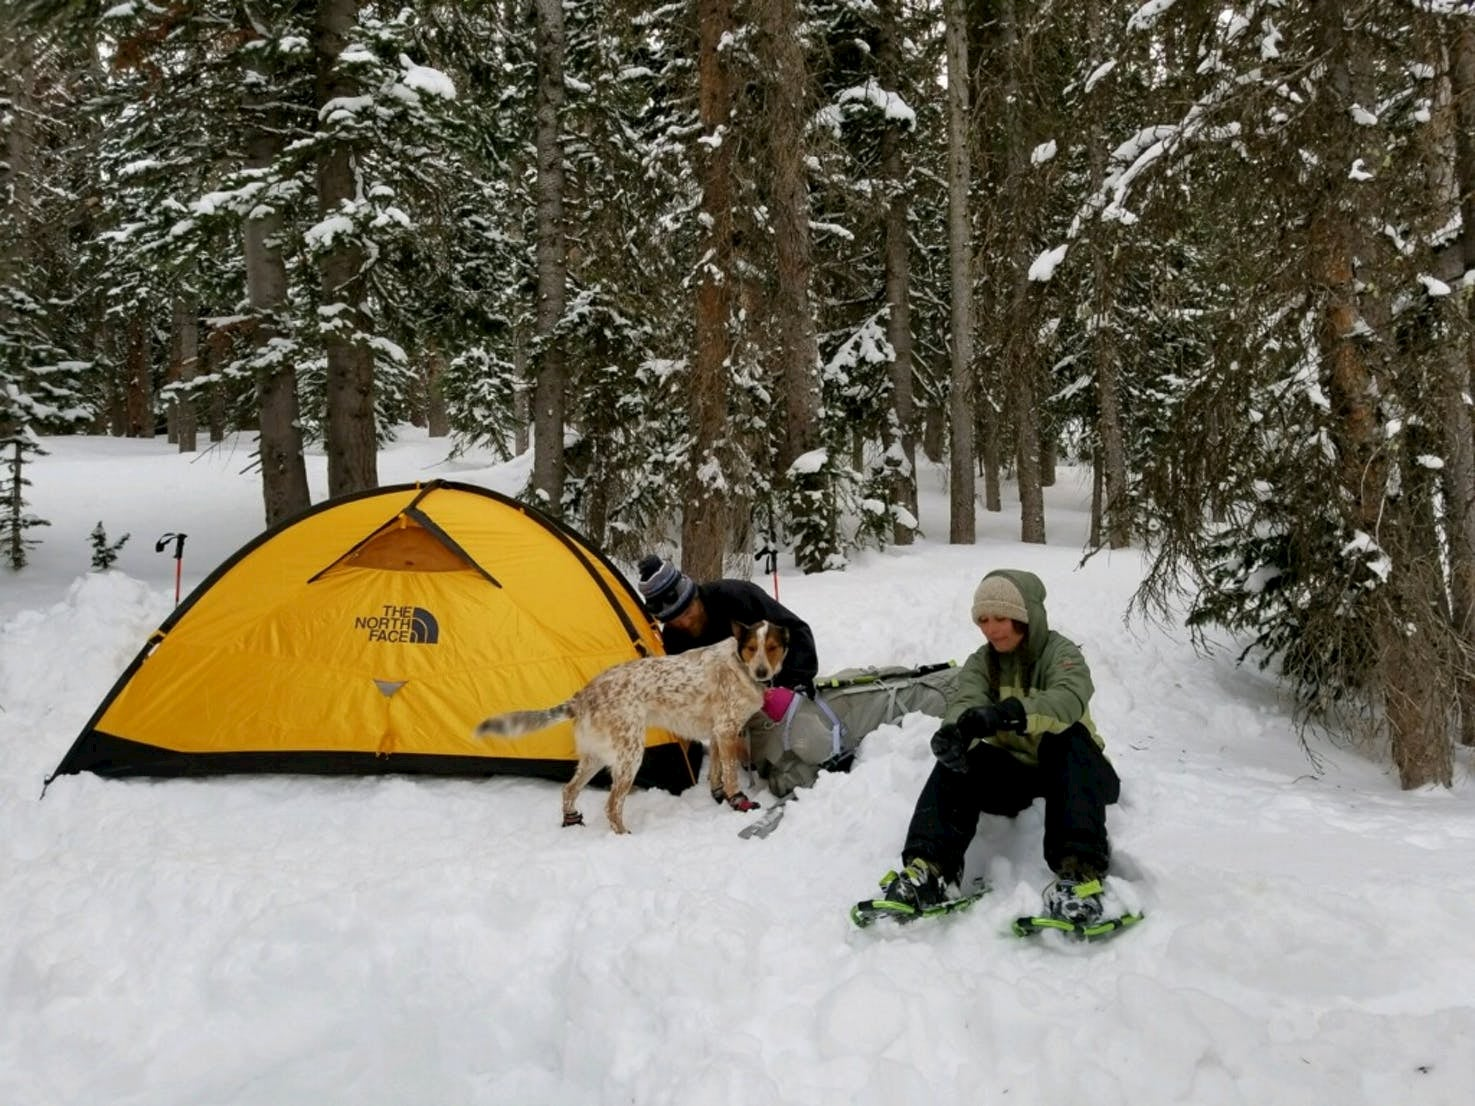 Women in snowshoes sitting beside yellow tent with her dog in the snow in State forest State Park.